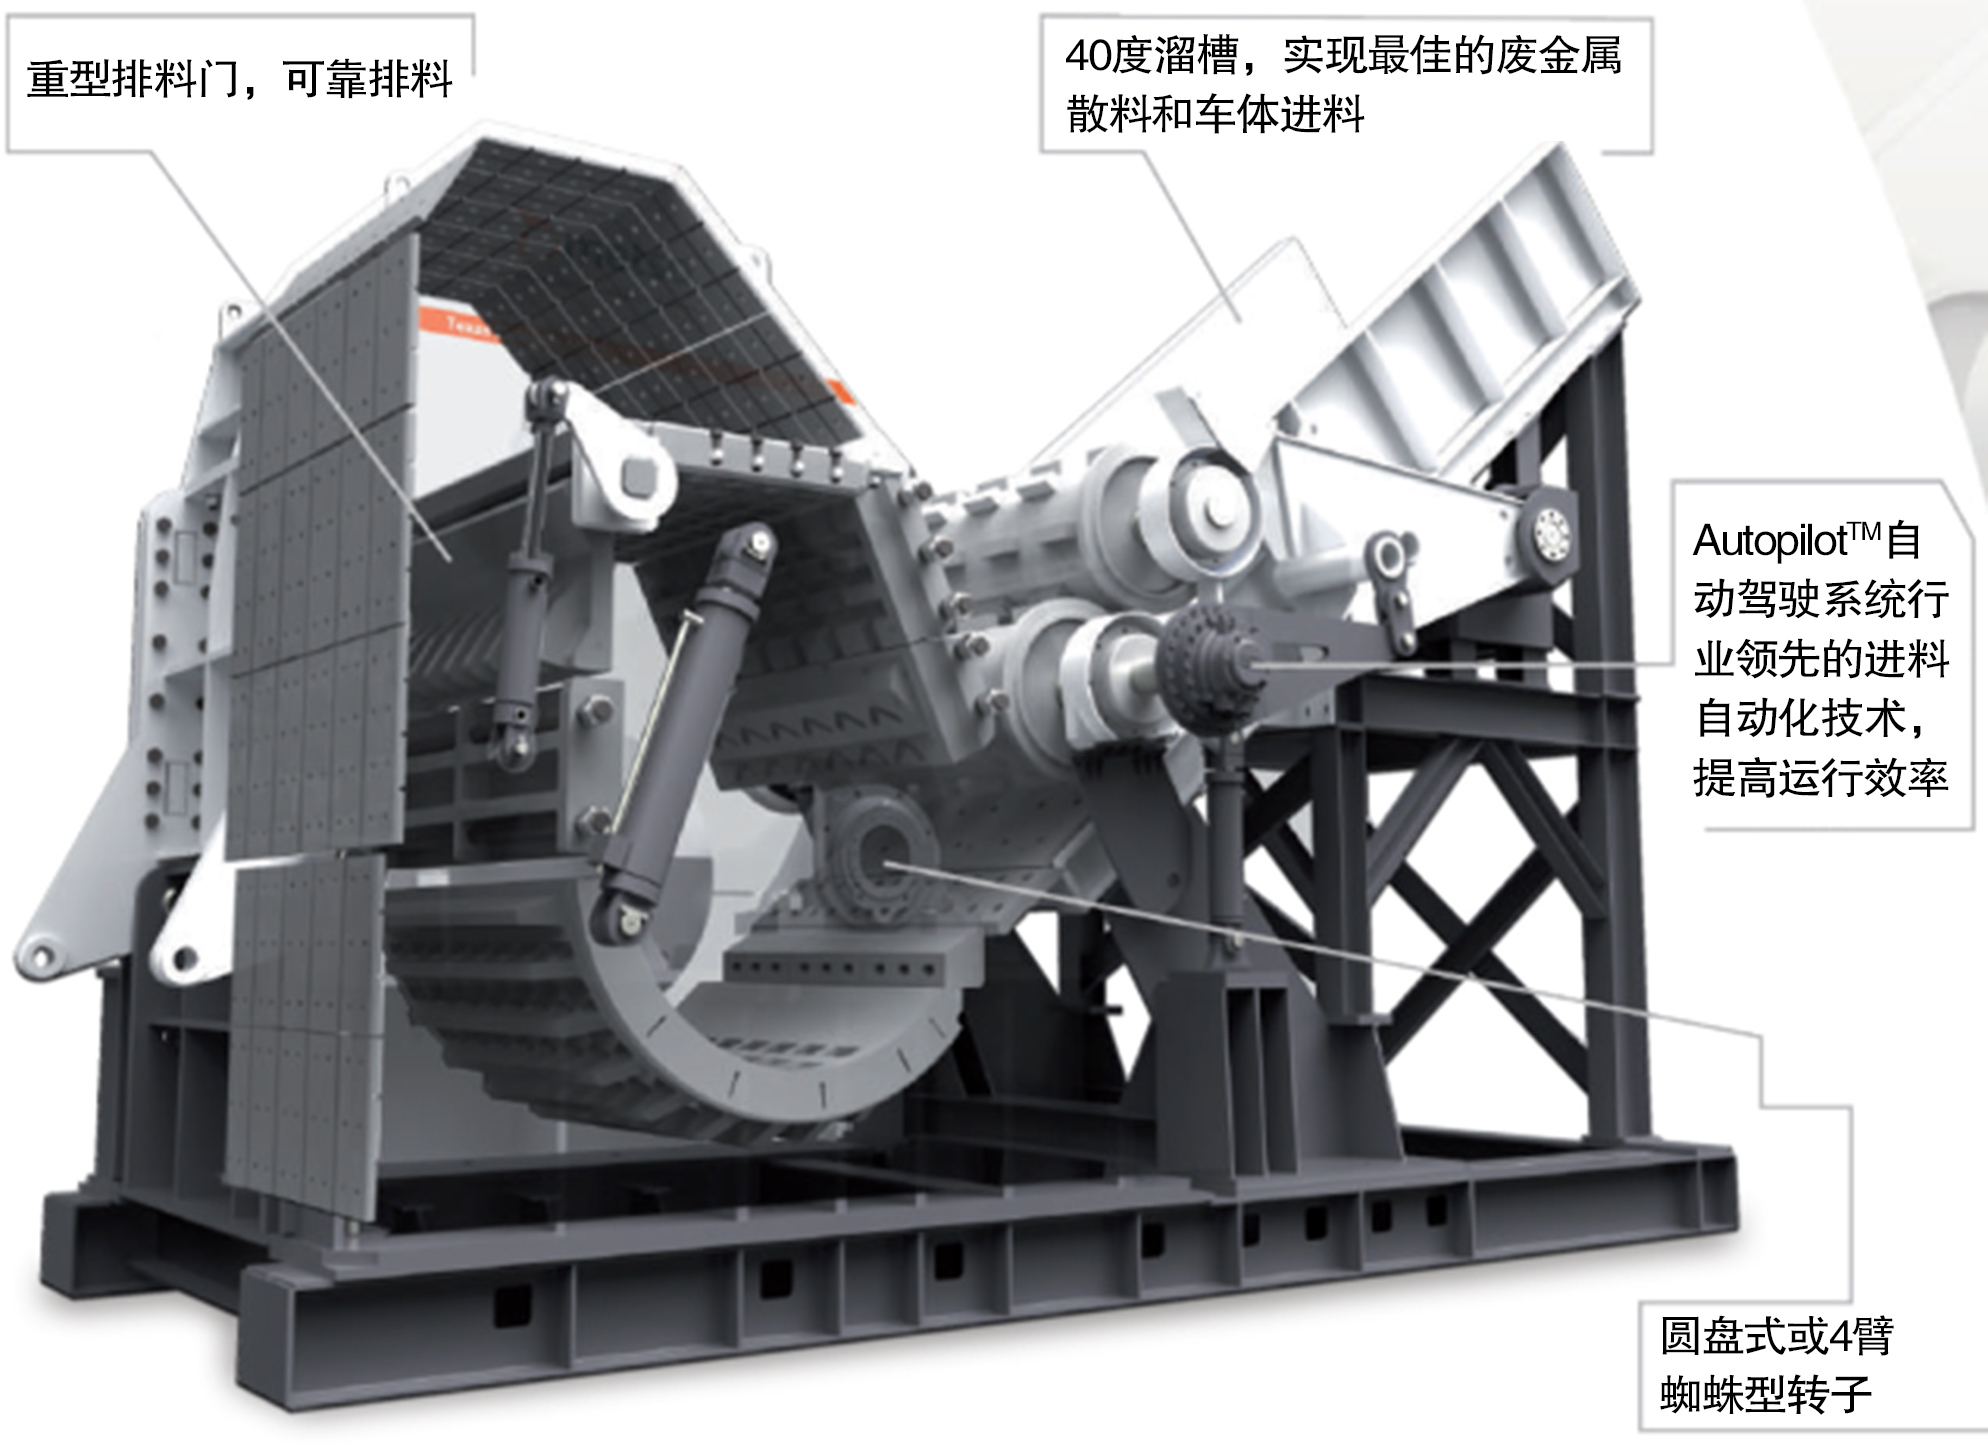 TexasShredder process overview 1cn1.jpg